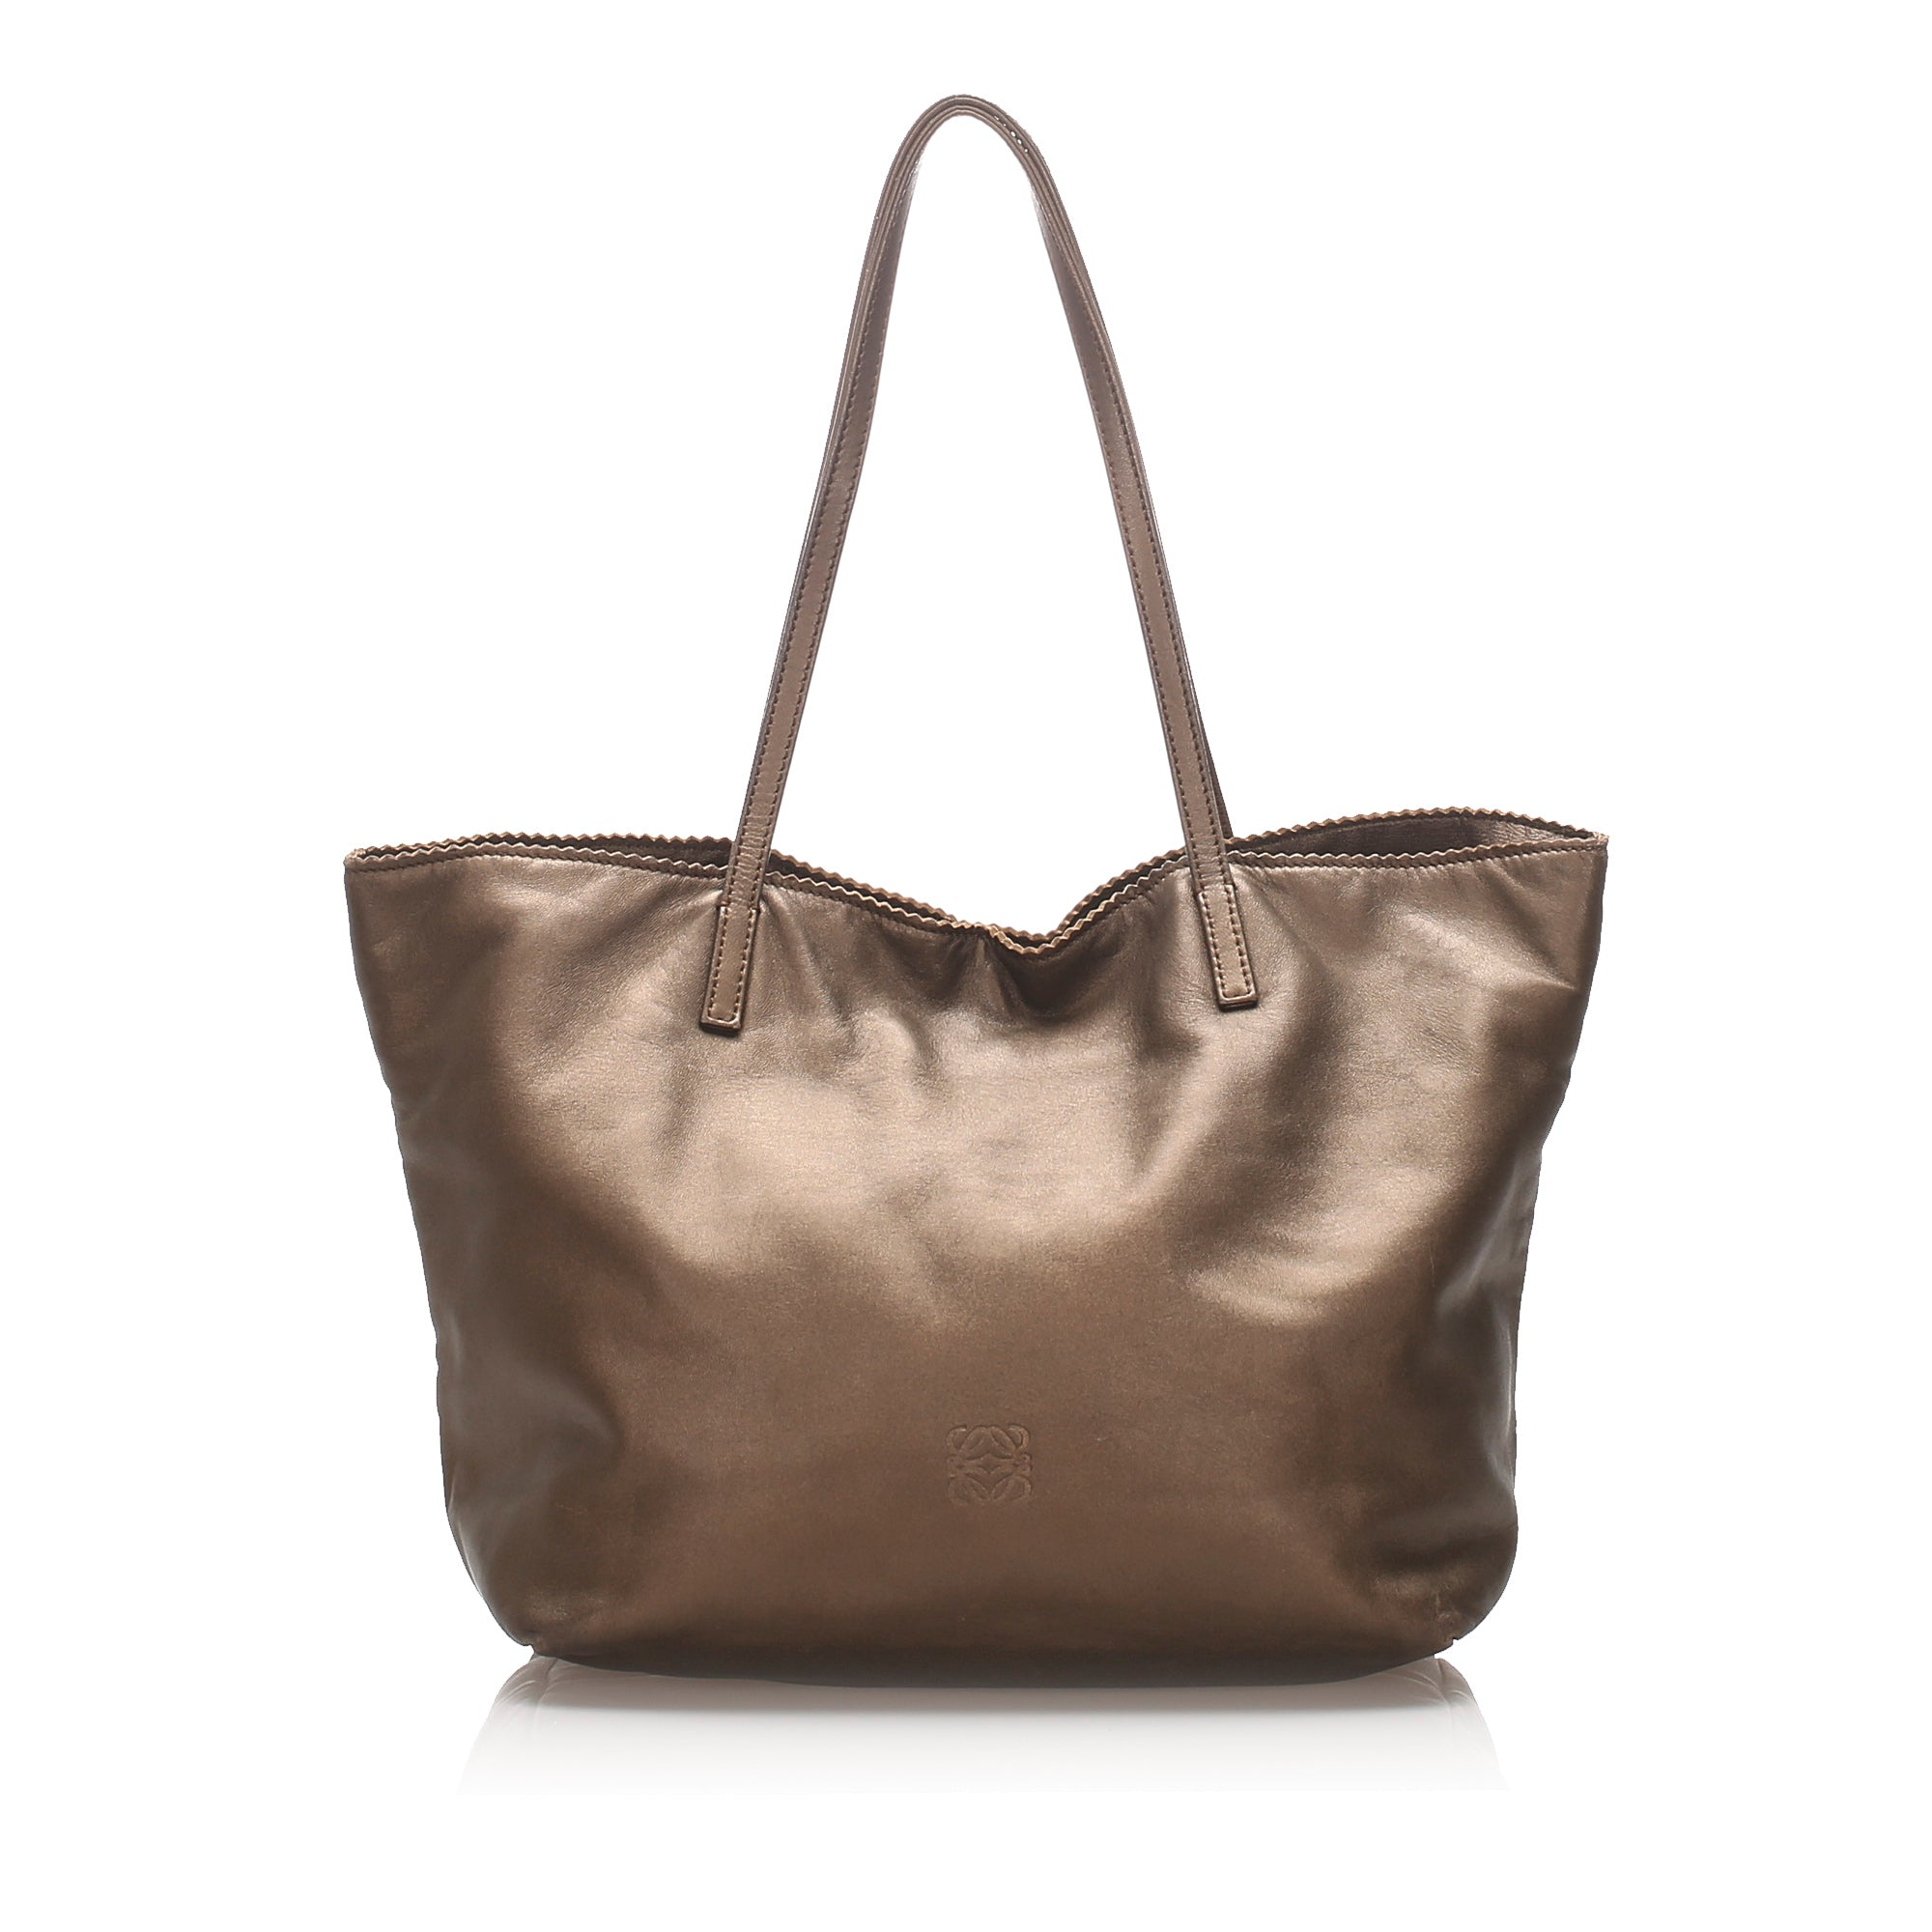 Loewe Brown Leather Tote Bag